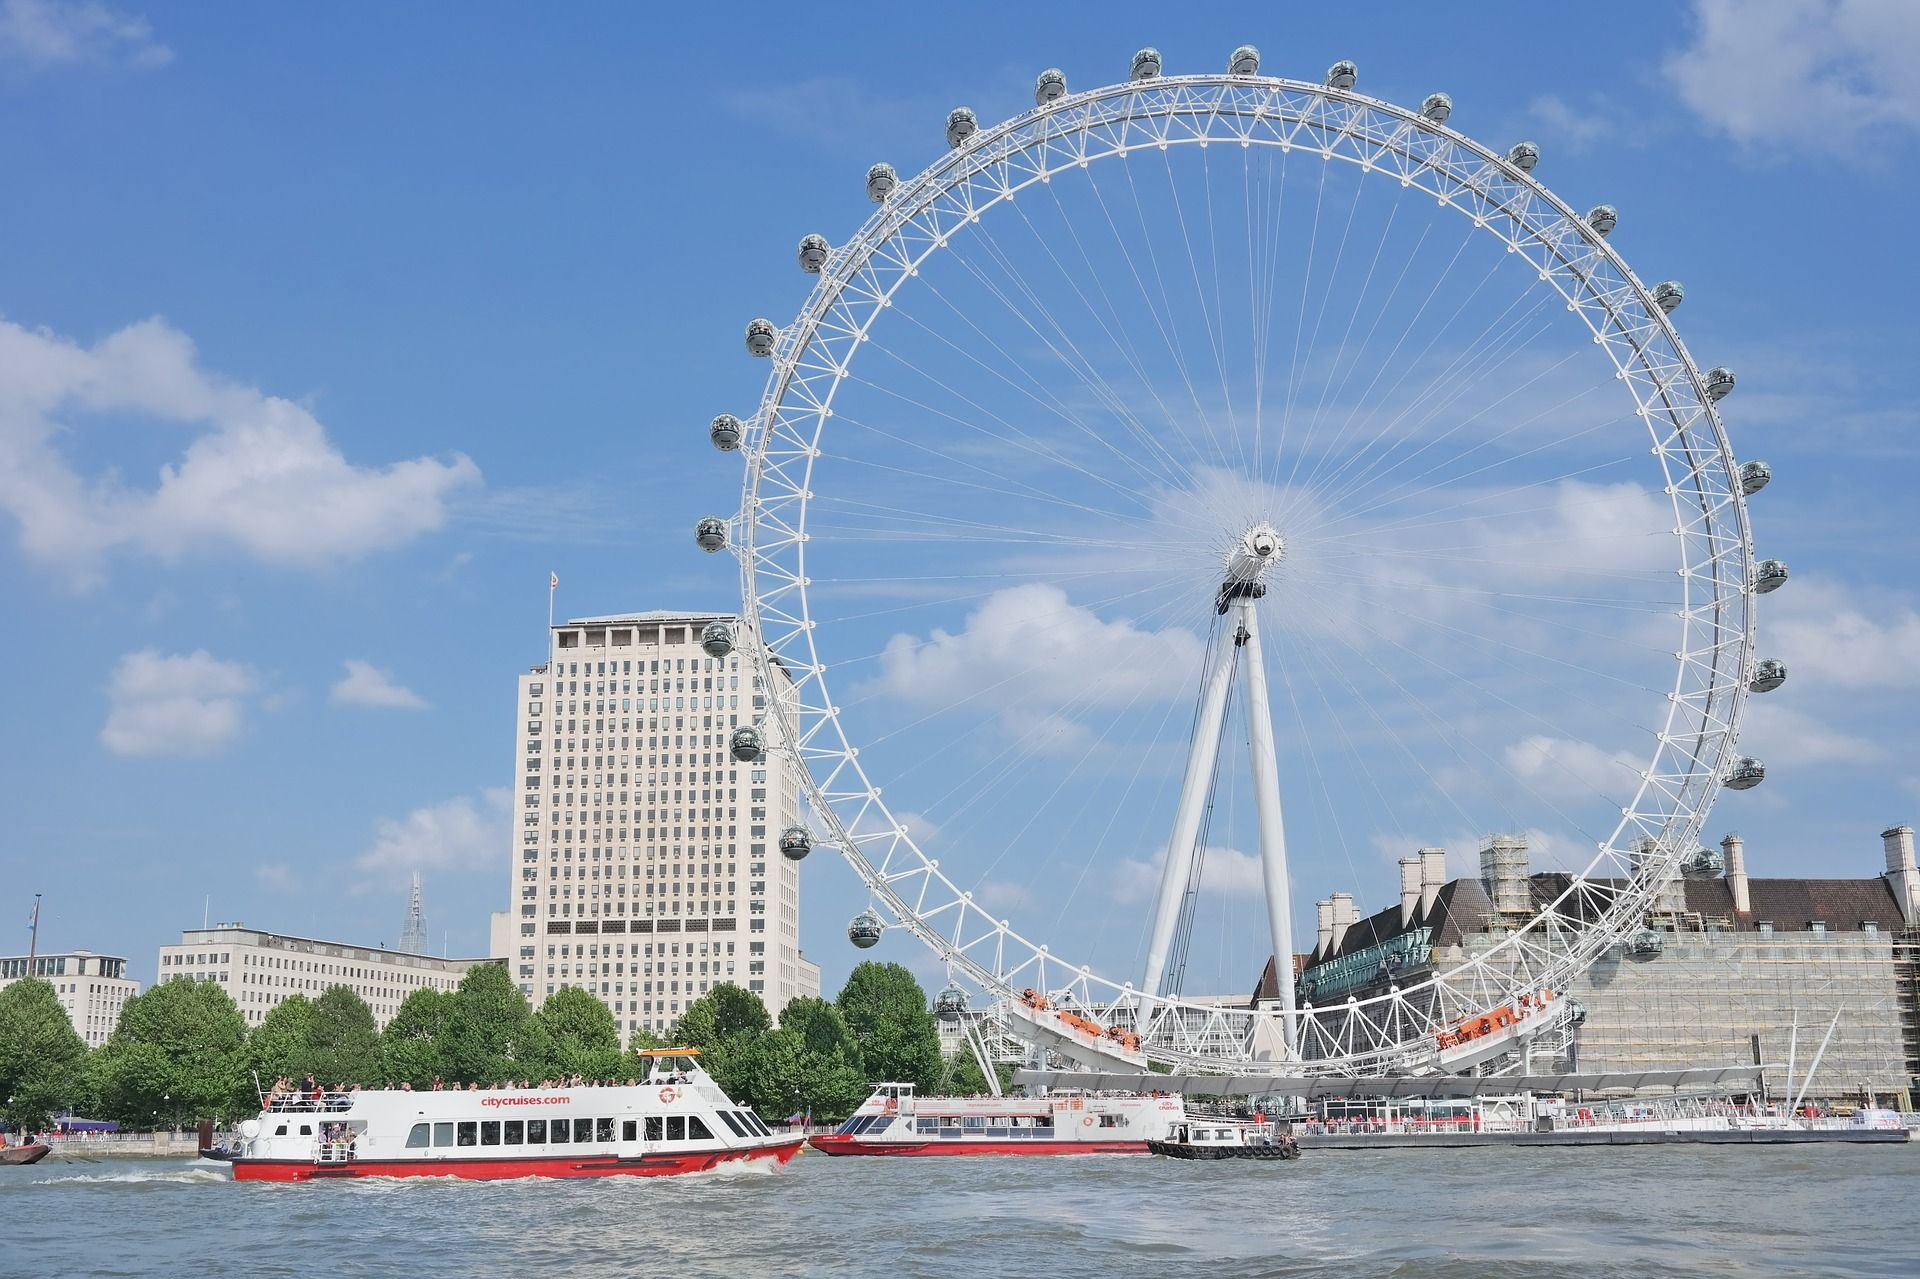 The CocaCola London Eye is centrally located in the heart of the capital, gracefully rotating over the River Thames